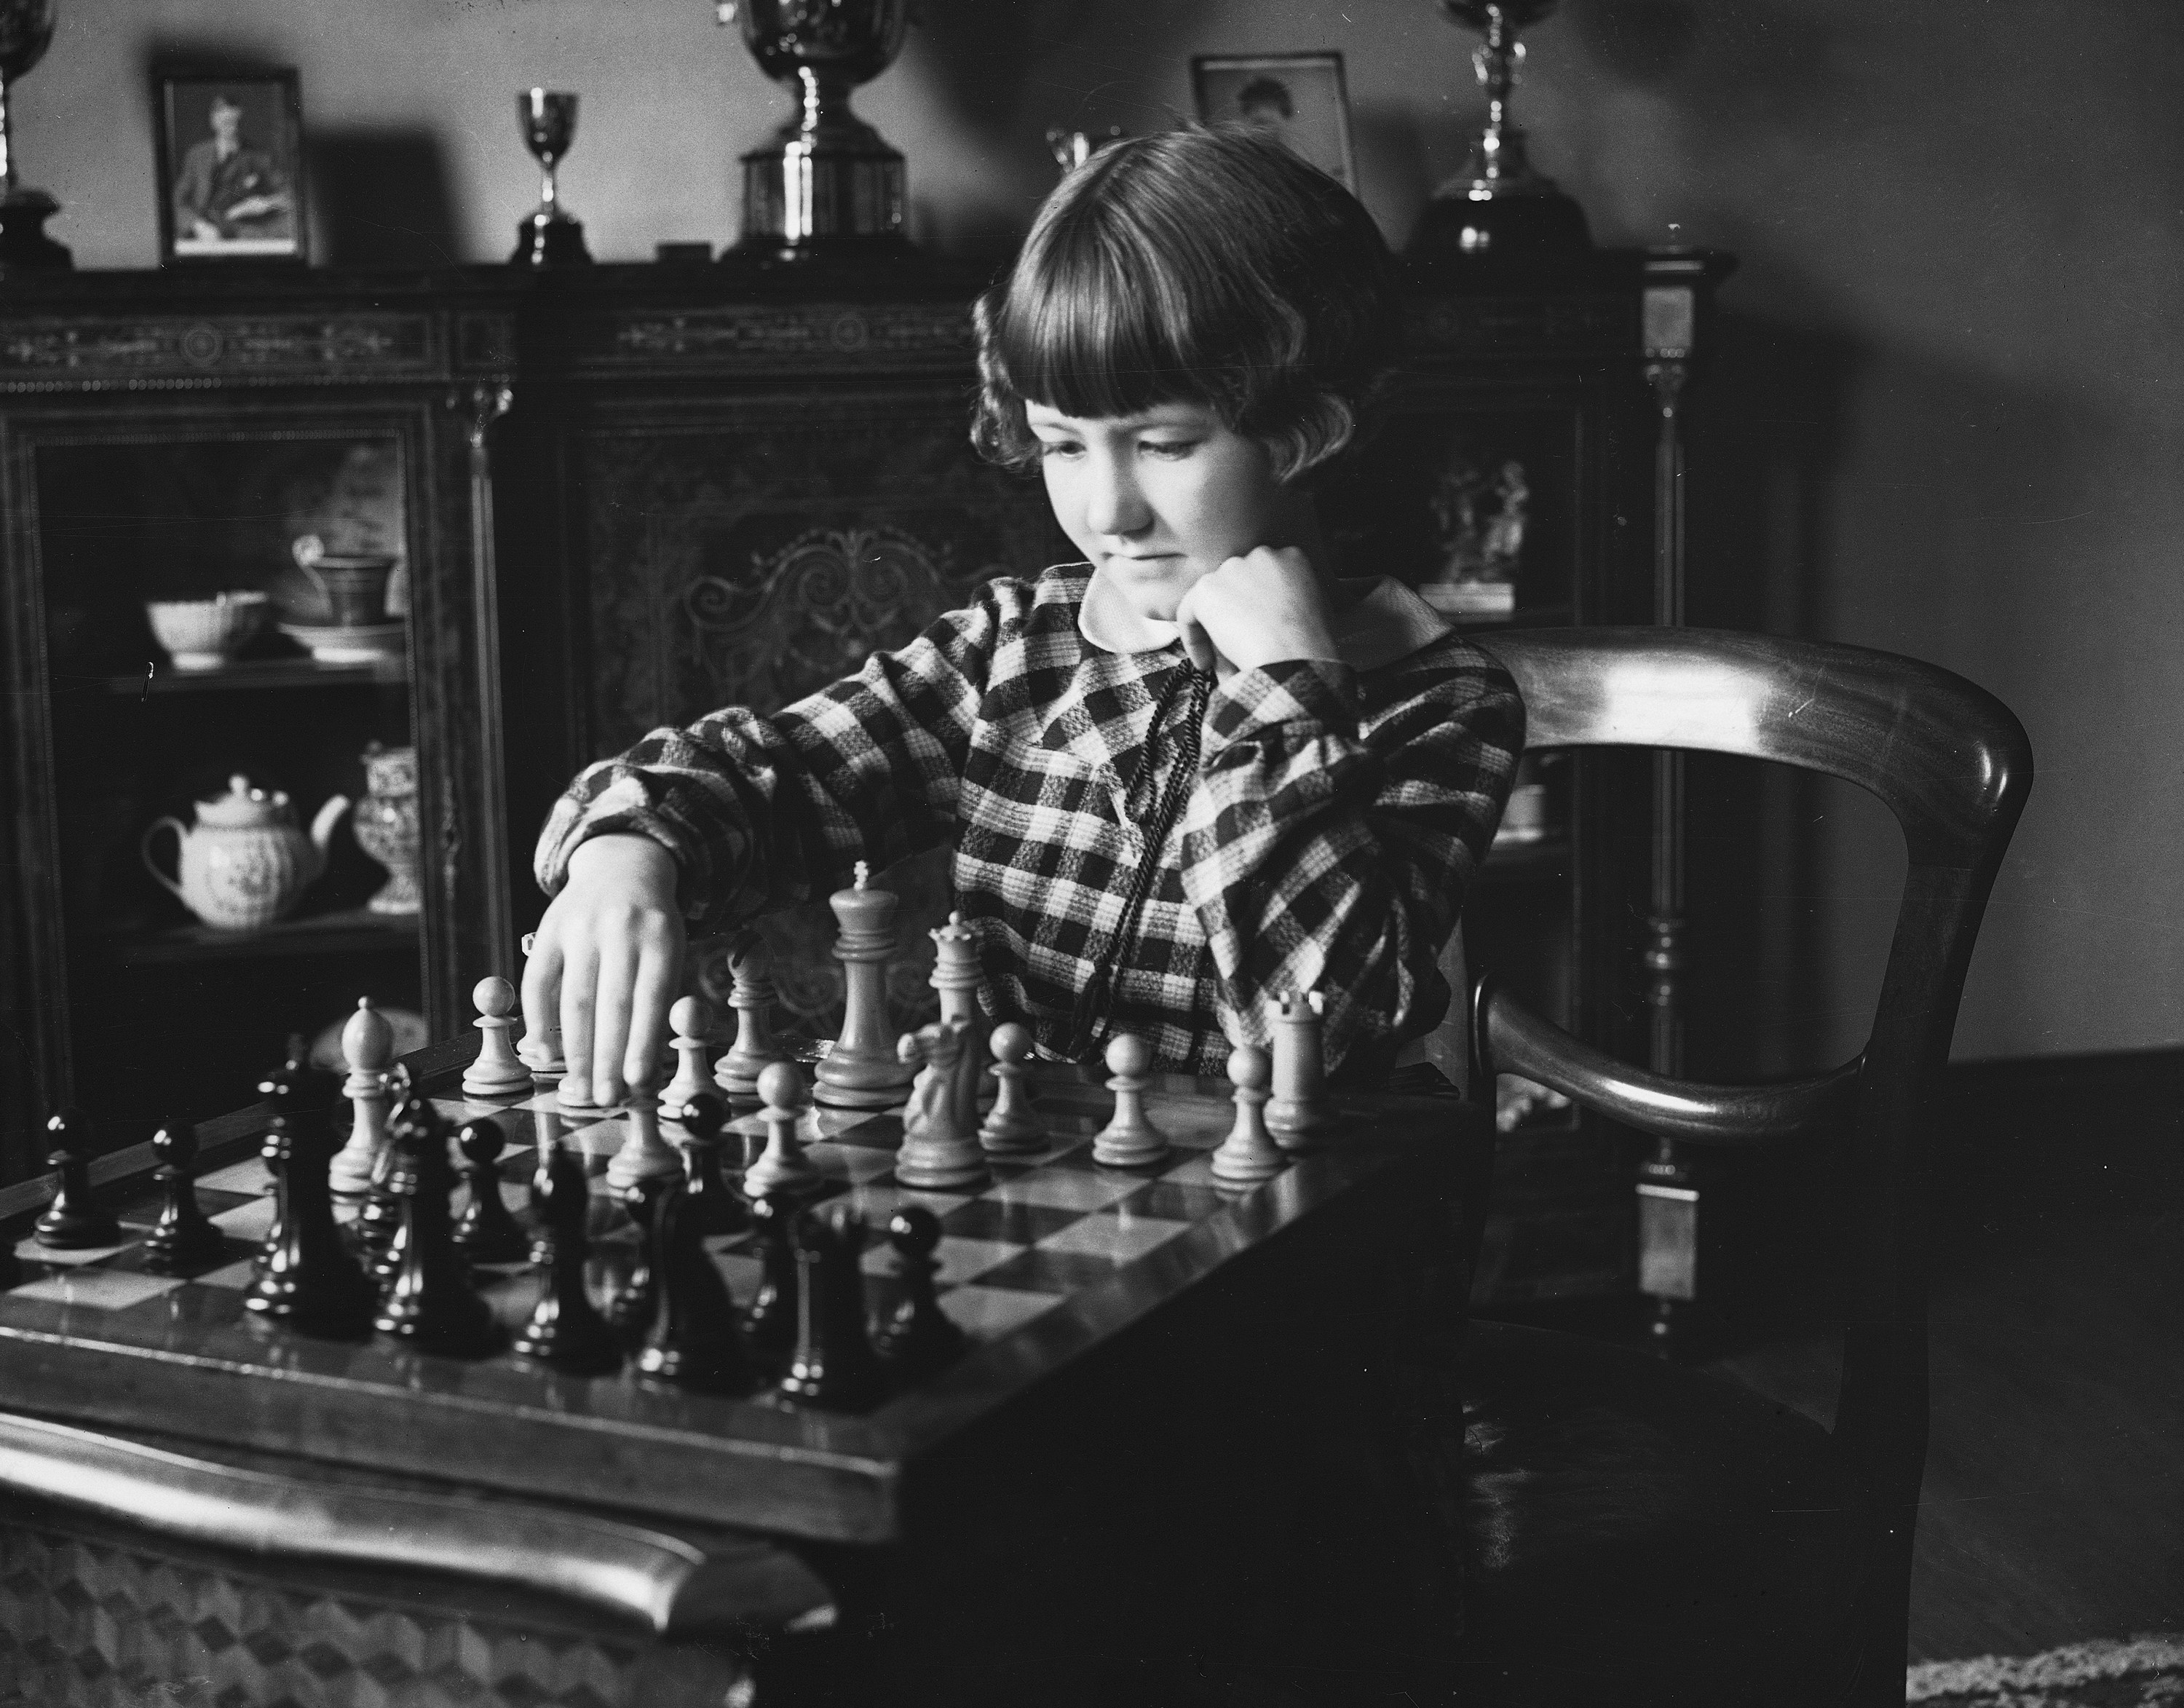 A young girl in a checkered dress plays chess in front of trophies on a shelf